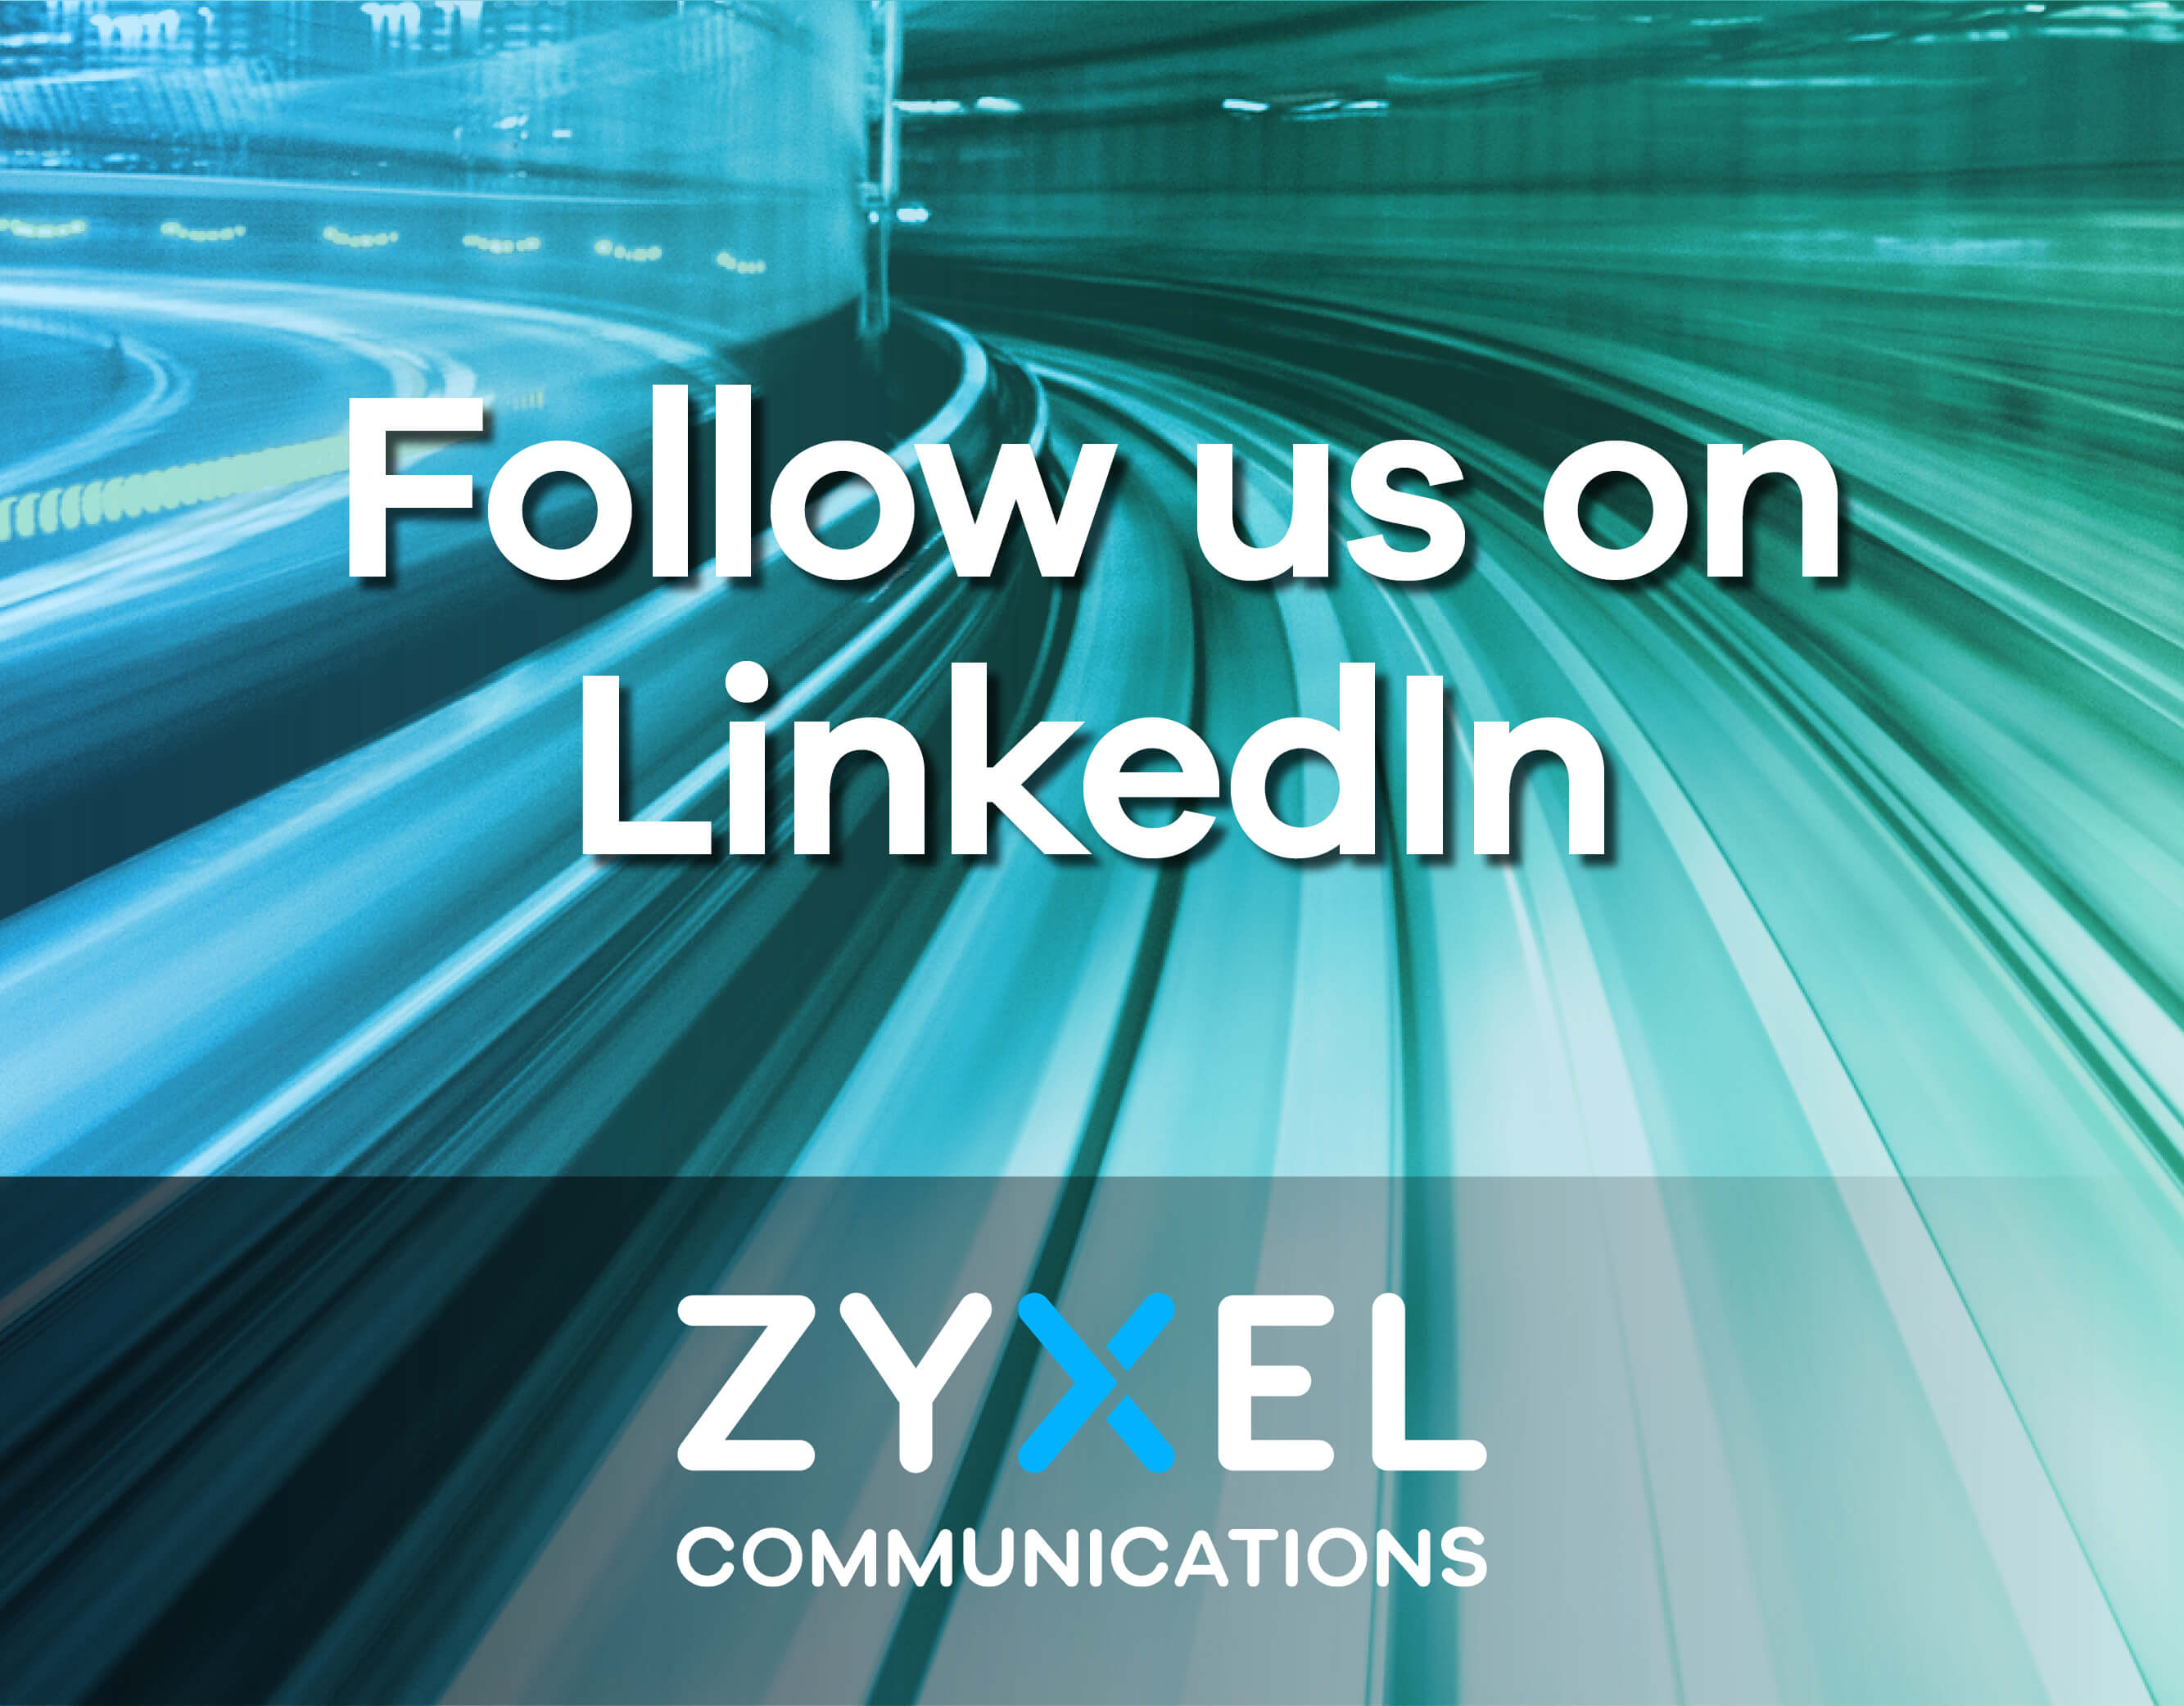 Zyxel Communications – Follow us on Linkedin